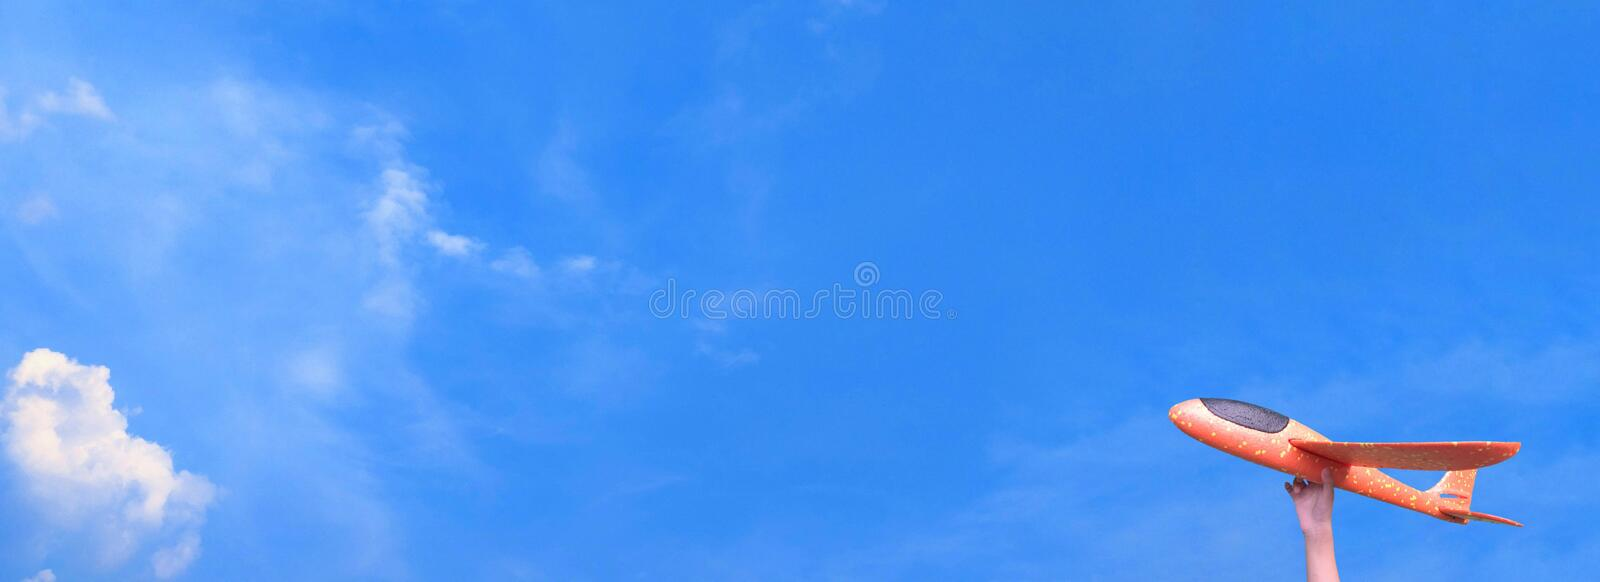 Airplane in hand fly in blue sky copy space and white cloud. Travel abroad in holiday. Childhood dreams aviation concept. Journey stock image